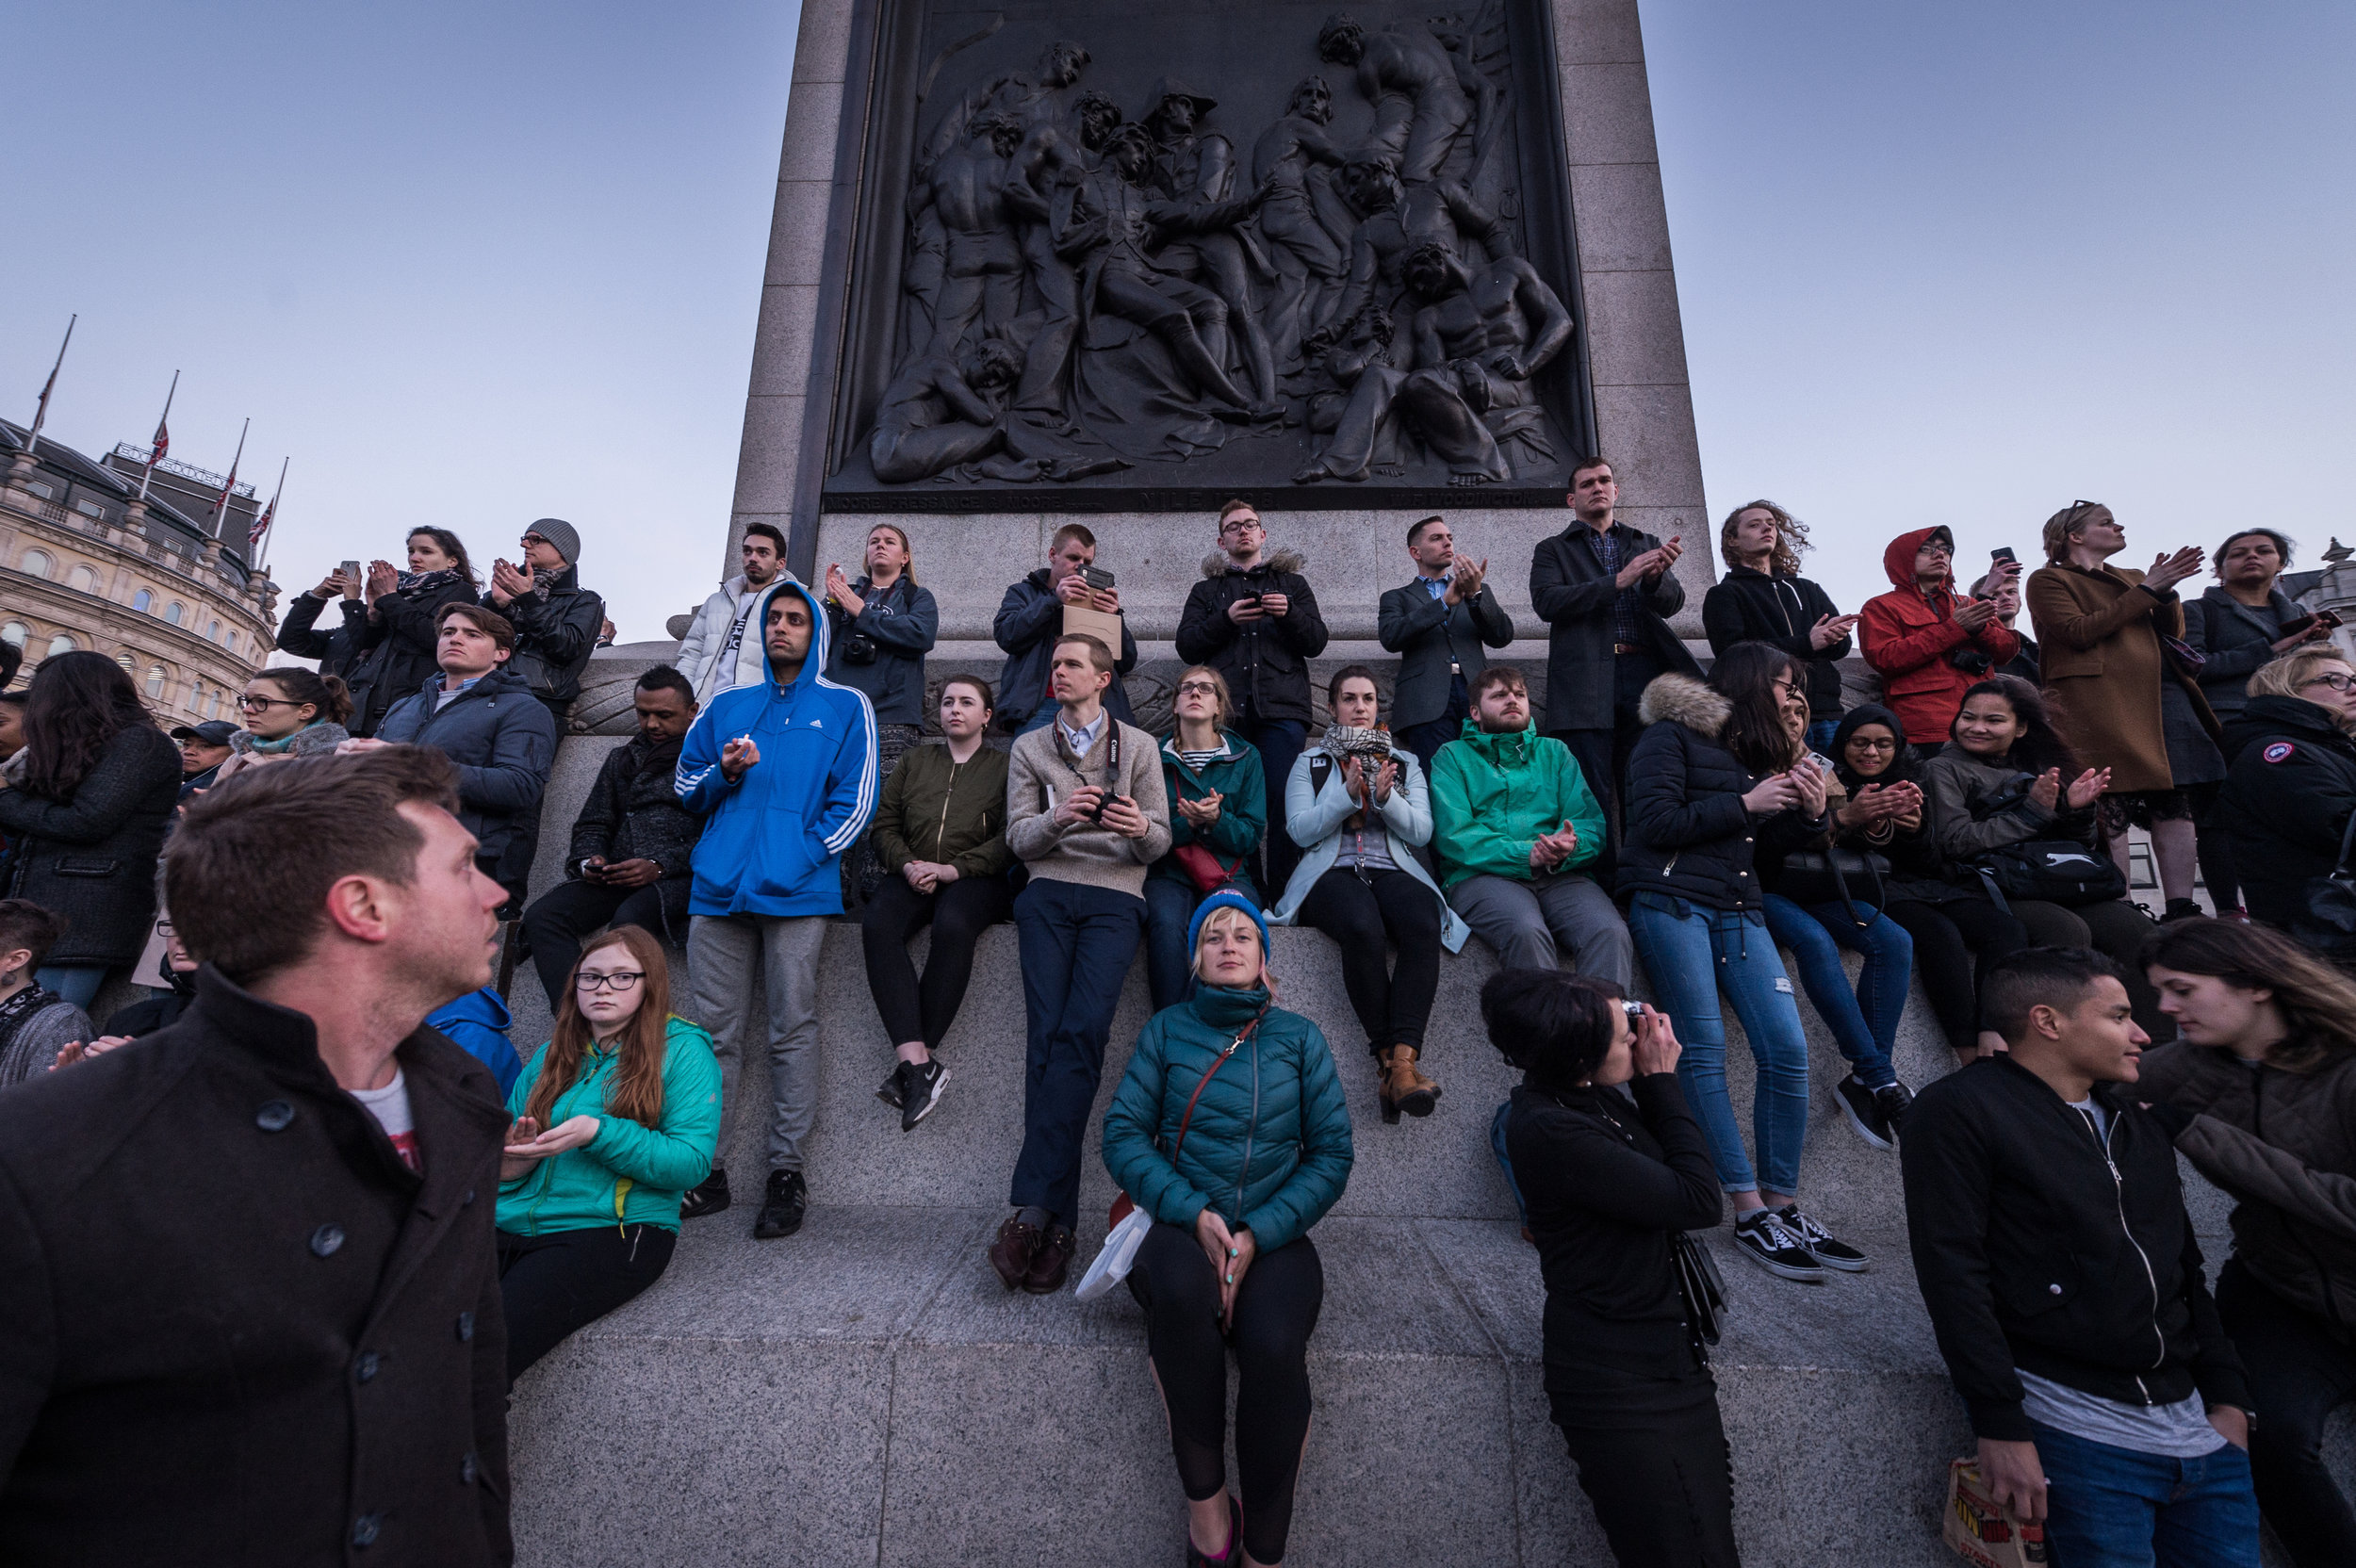 Onlookers climb Nelson's column to get a better view of the proceedings.